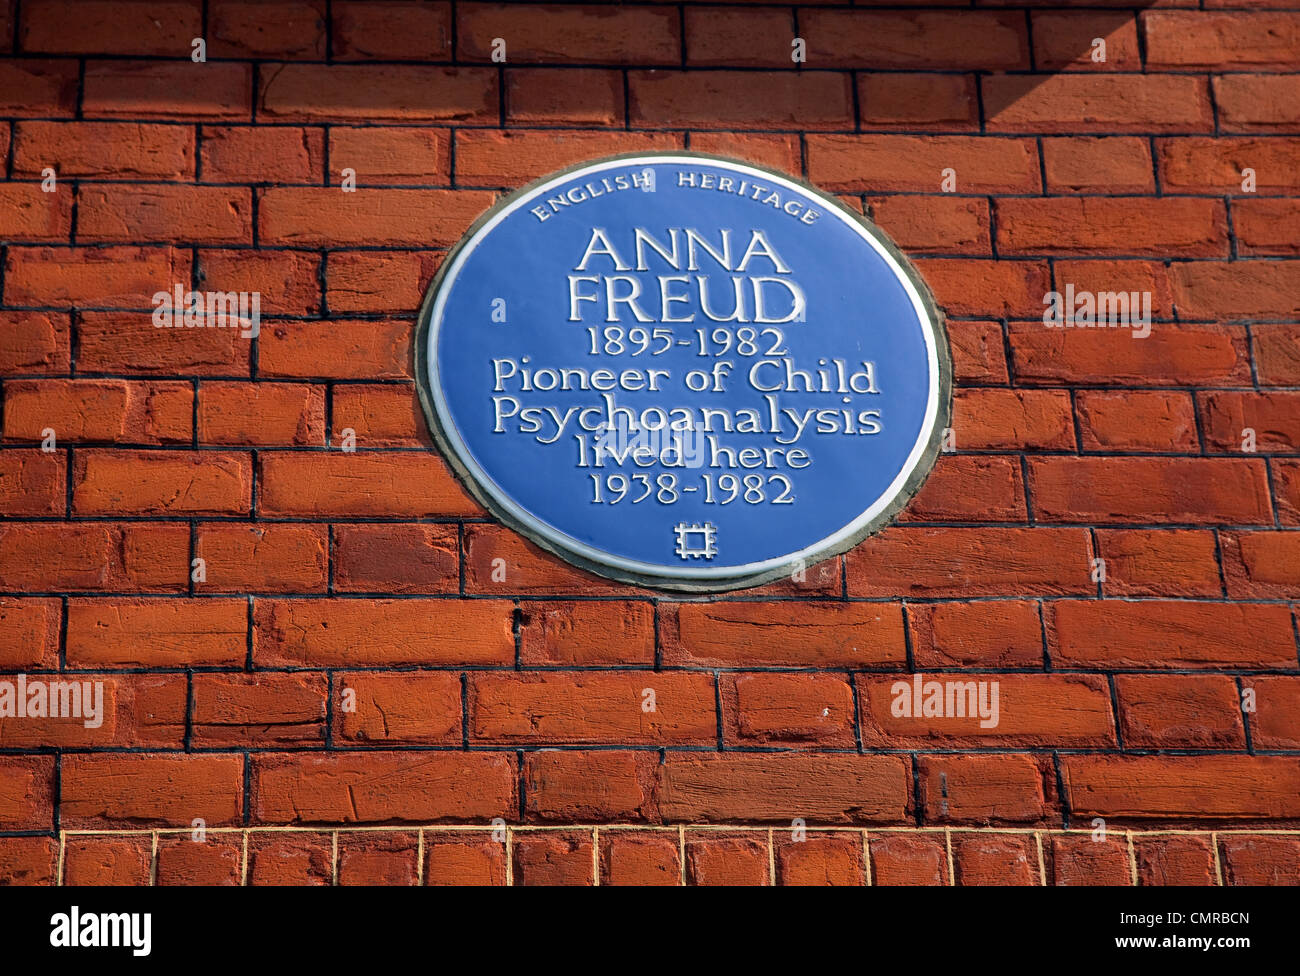 Freud Museum, Hampstead, London - blue plaque for Sigmund Freud's daughter Anna Freud who also lived there - Stock Image